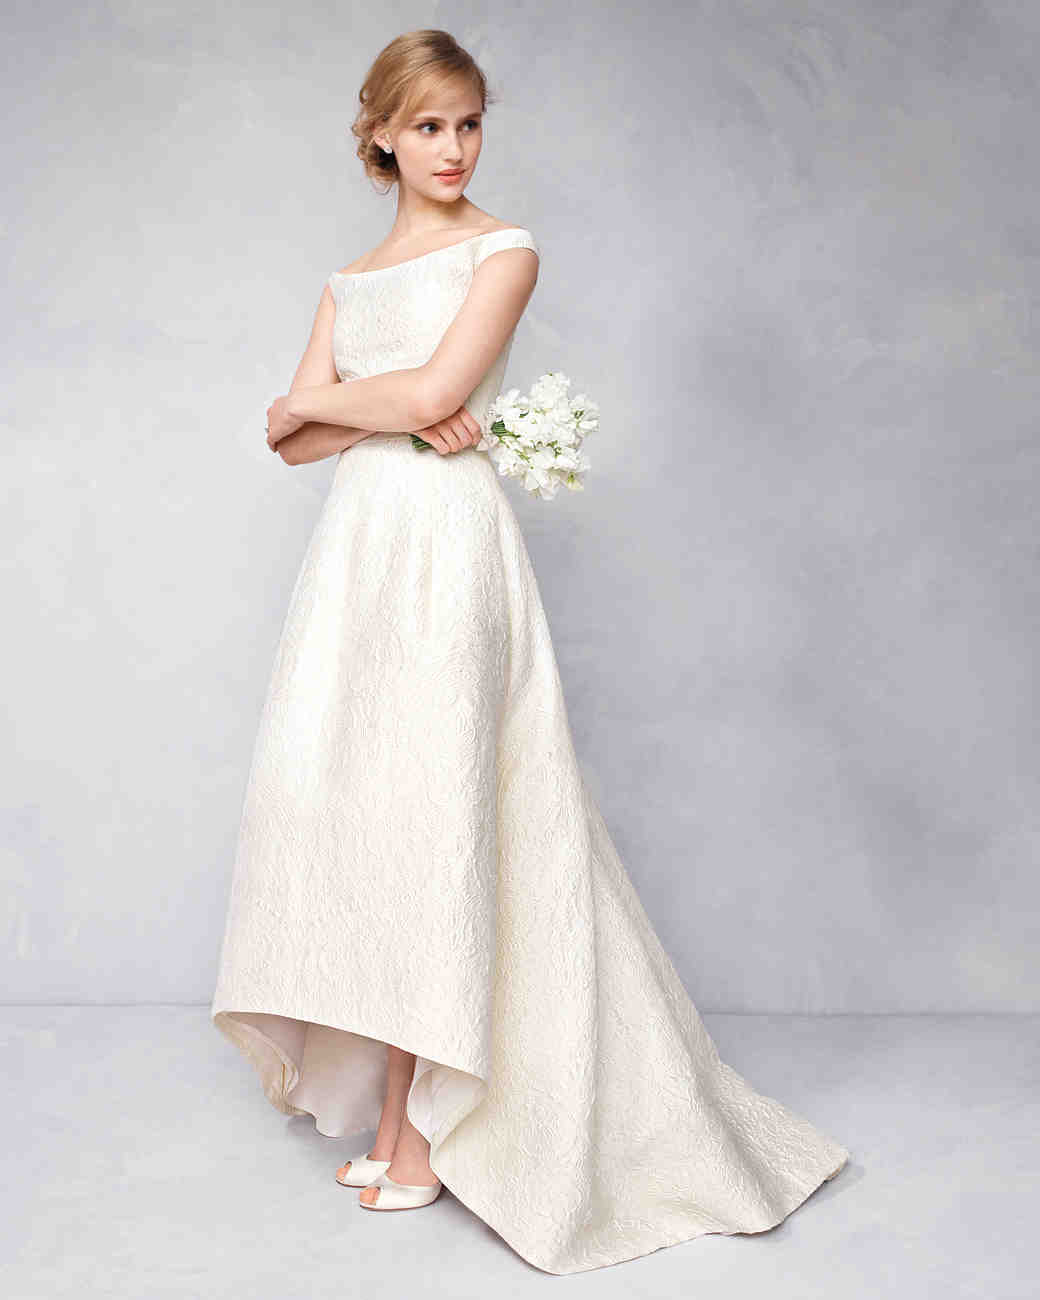 How to Look Stylish and Beautiful in Casual Wedding Dresses? | The ...